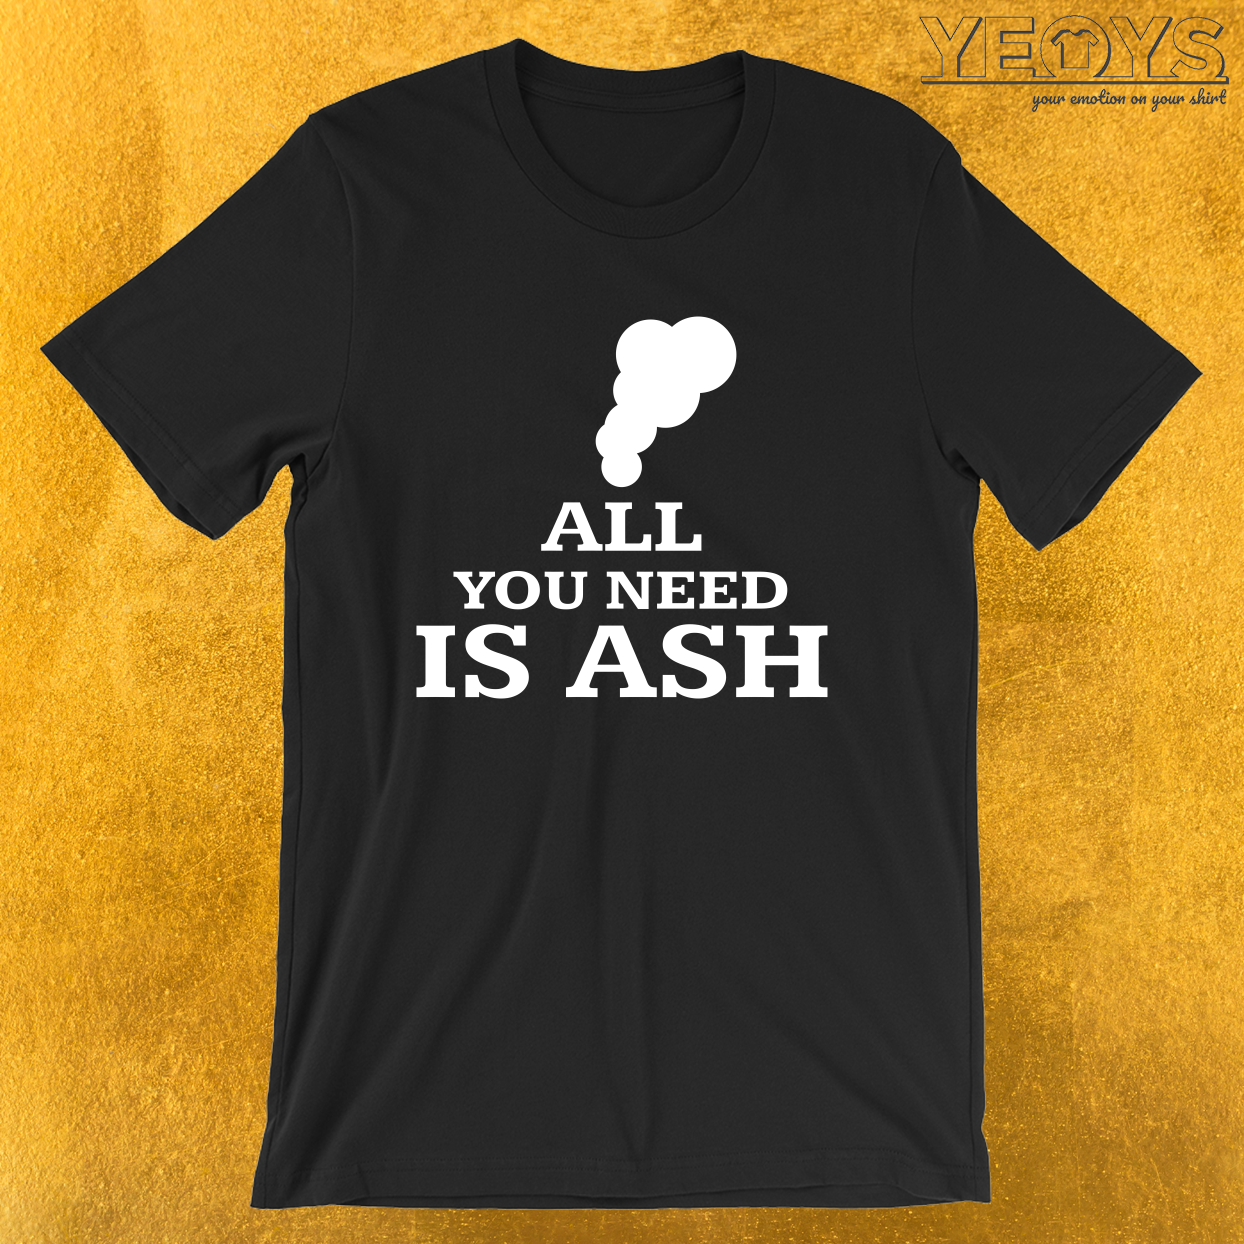 All You Need Is Ash – Funny Lava Volcano Tee